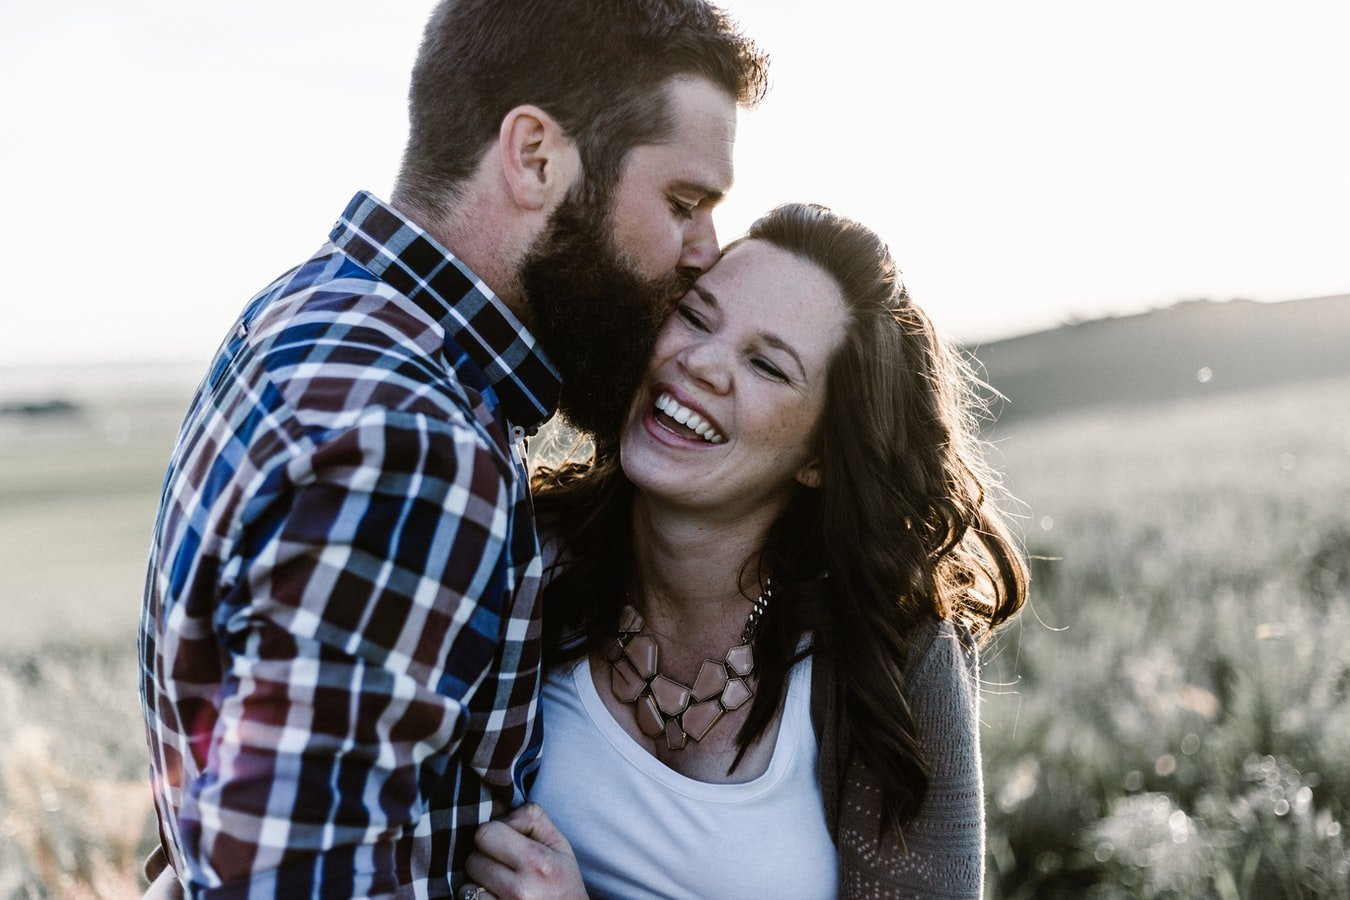 A man and woman smiling as they hold on to each other   Photo: Unsplash